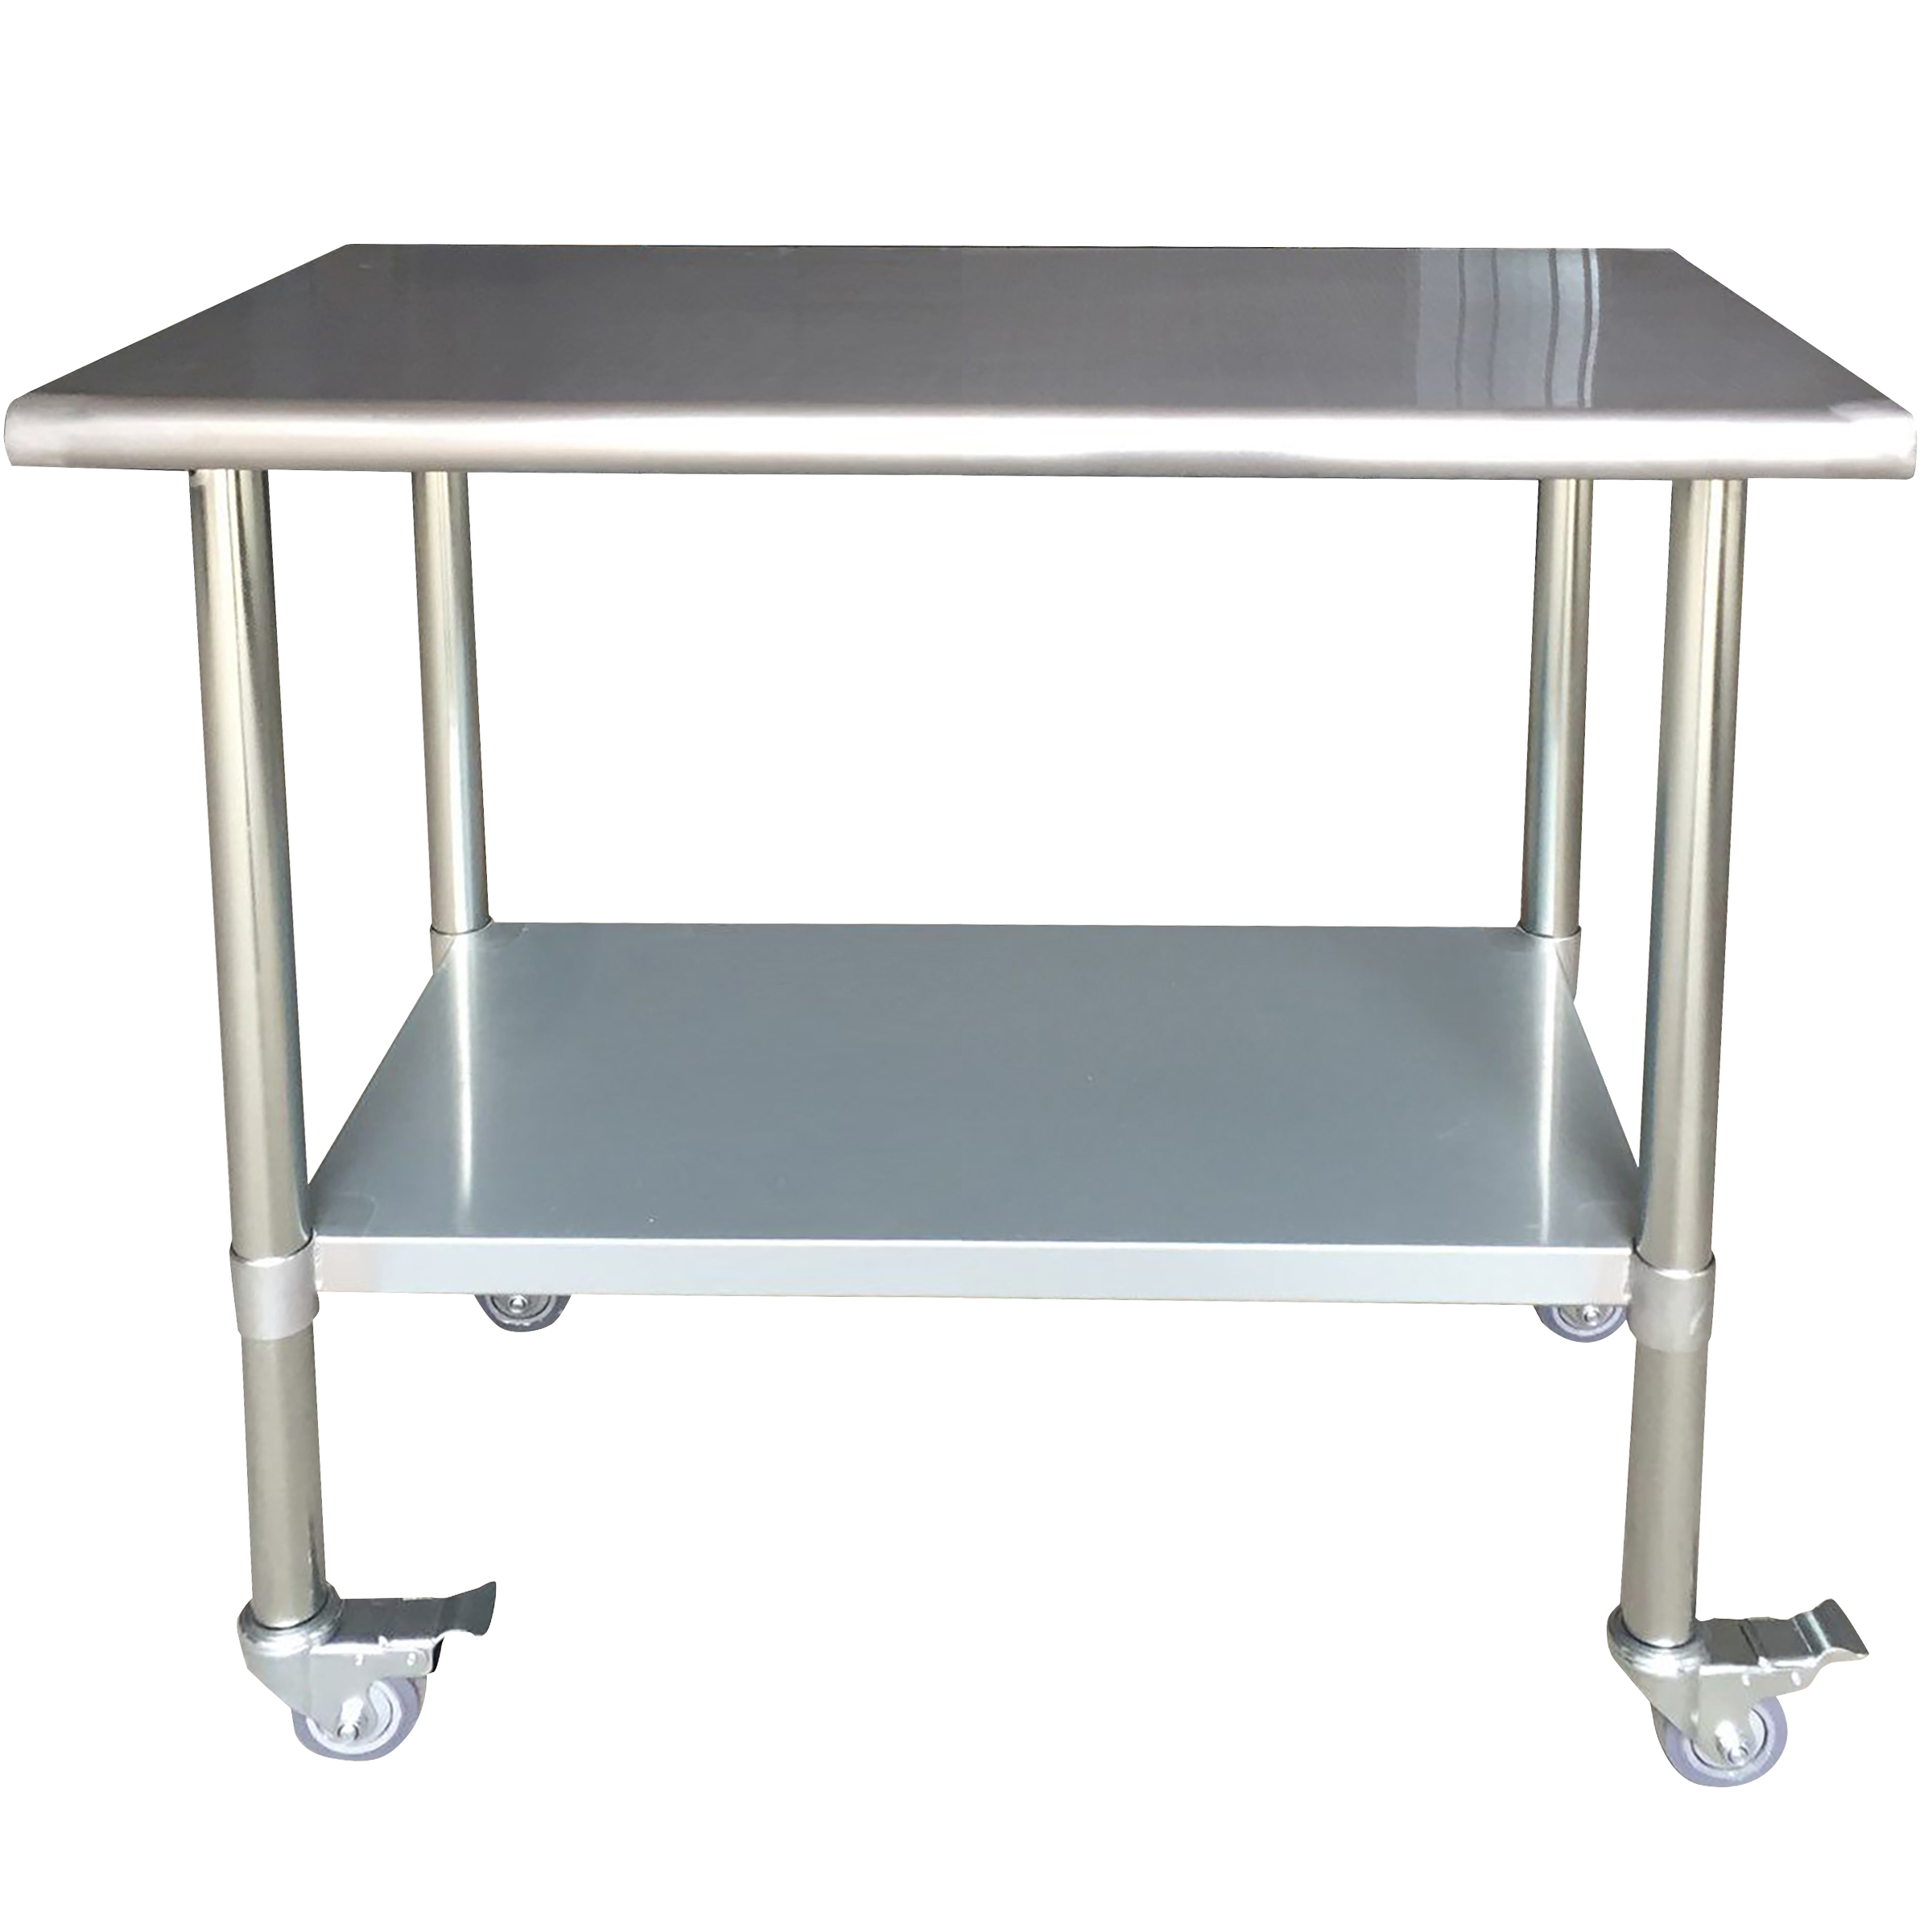 Stainless Steel Work Table with Casters 24 x 48 Inches